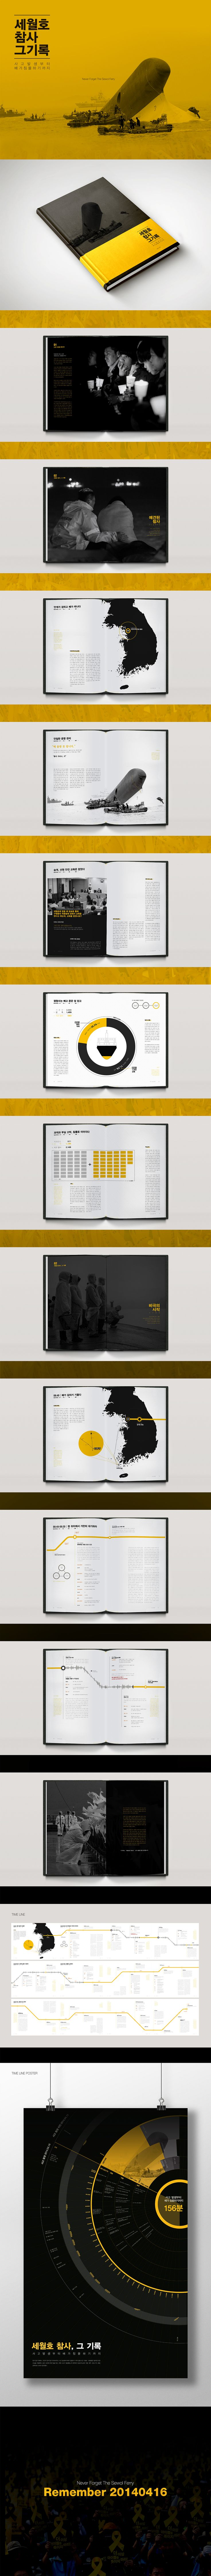 Sewol Ferry Disaster Timeline book : Remember 20140416 on Behance